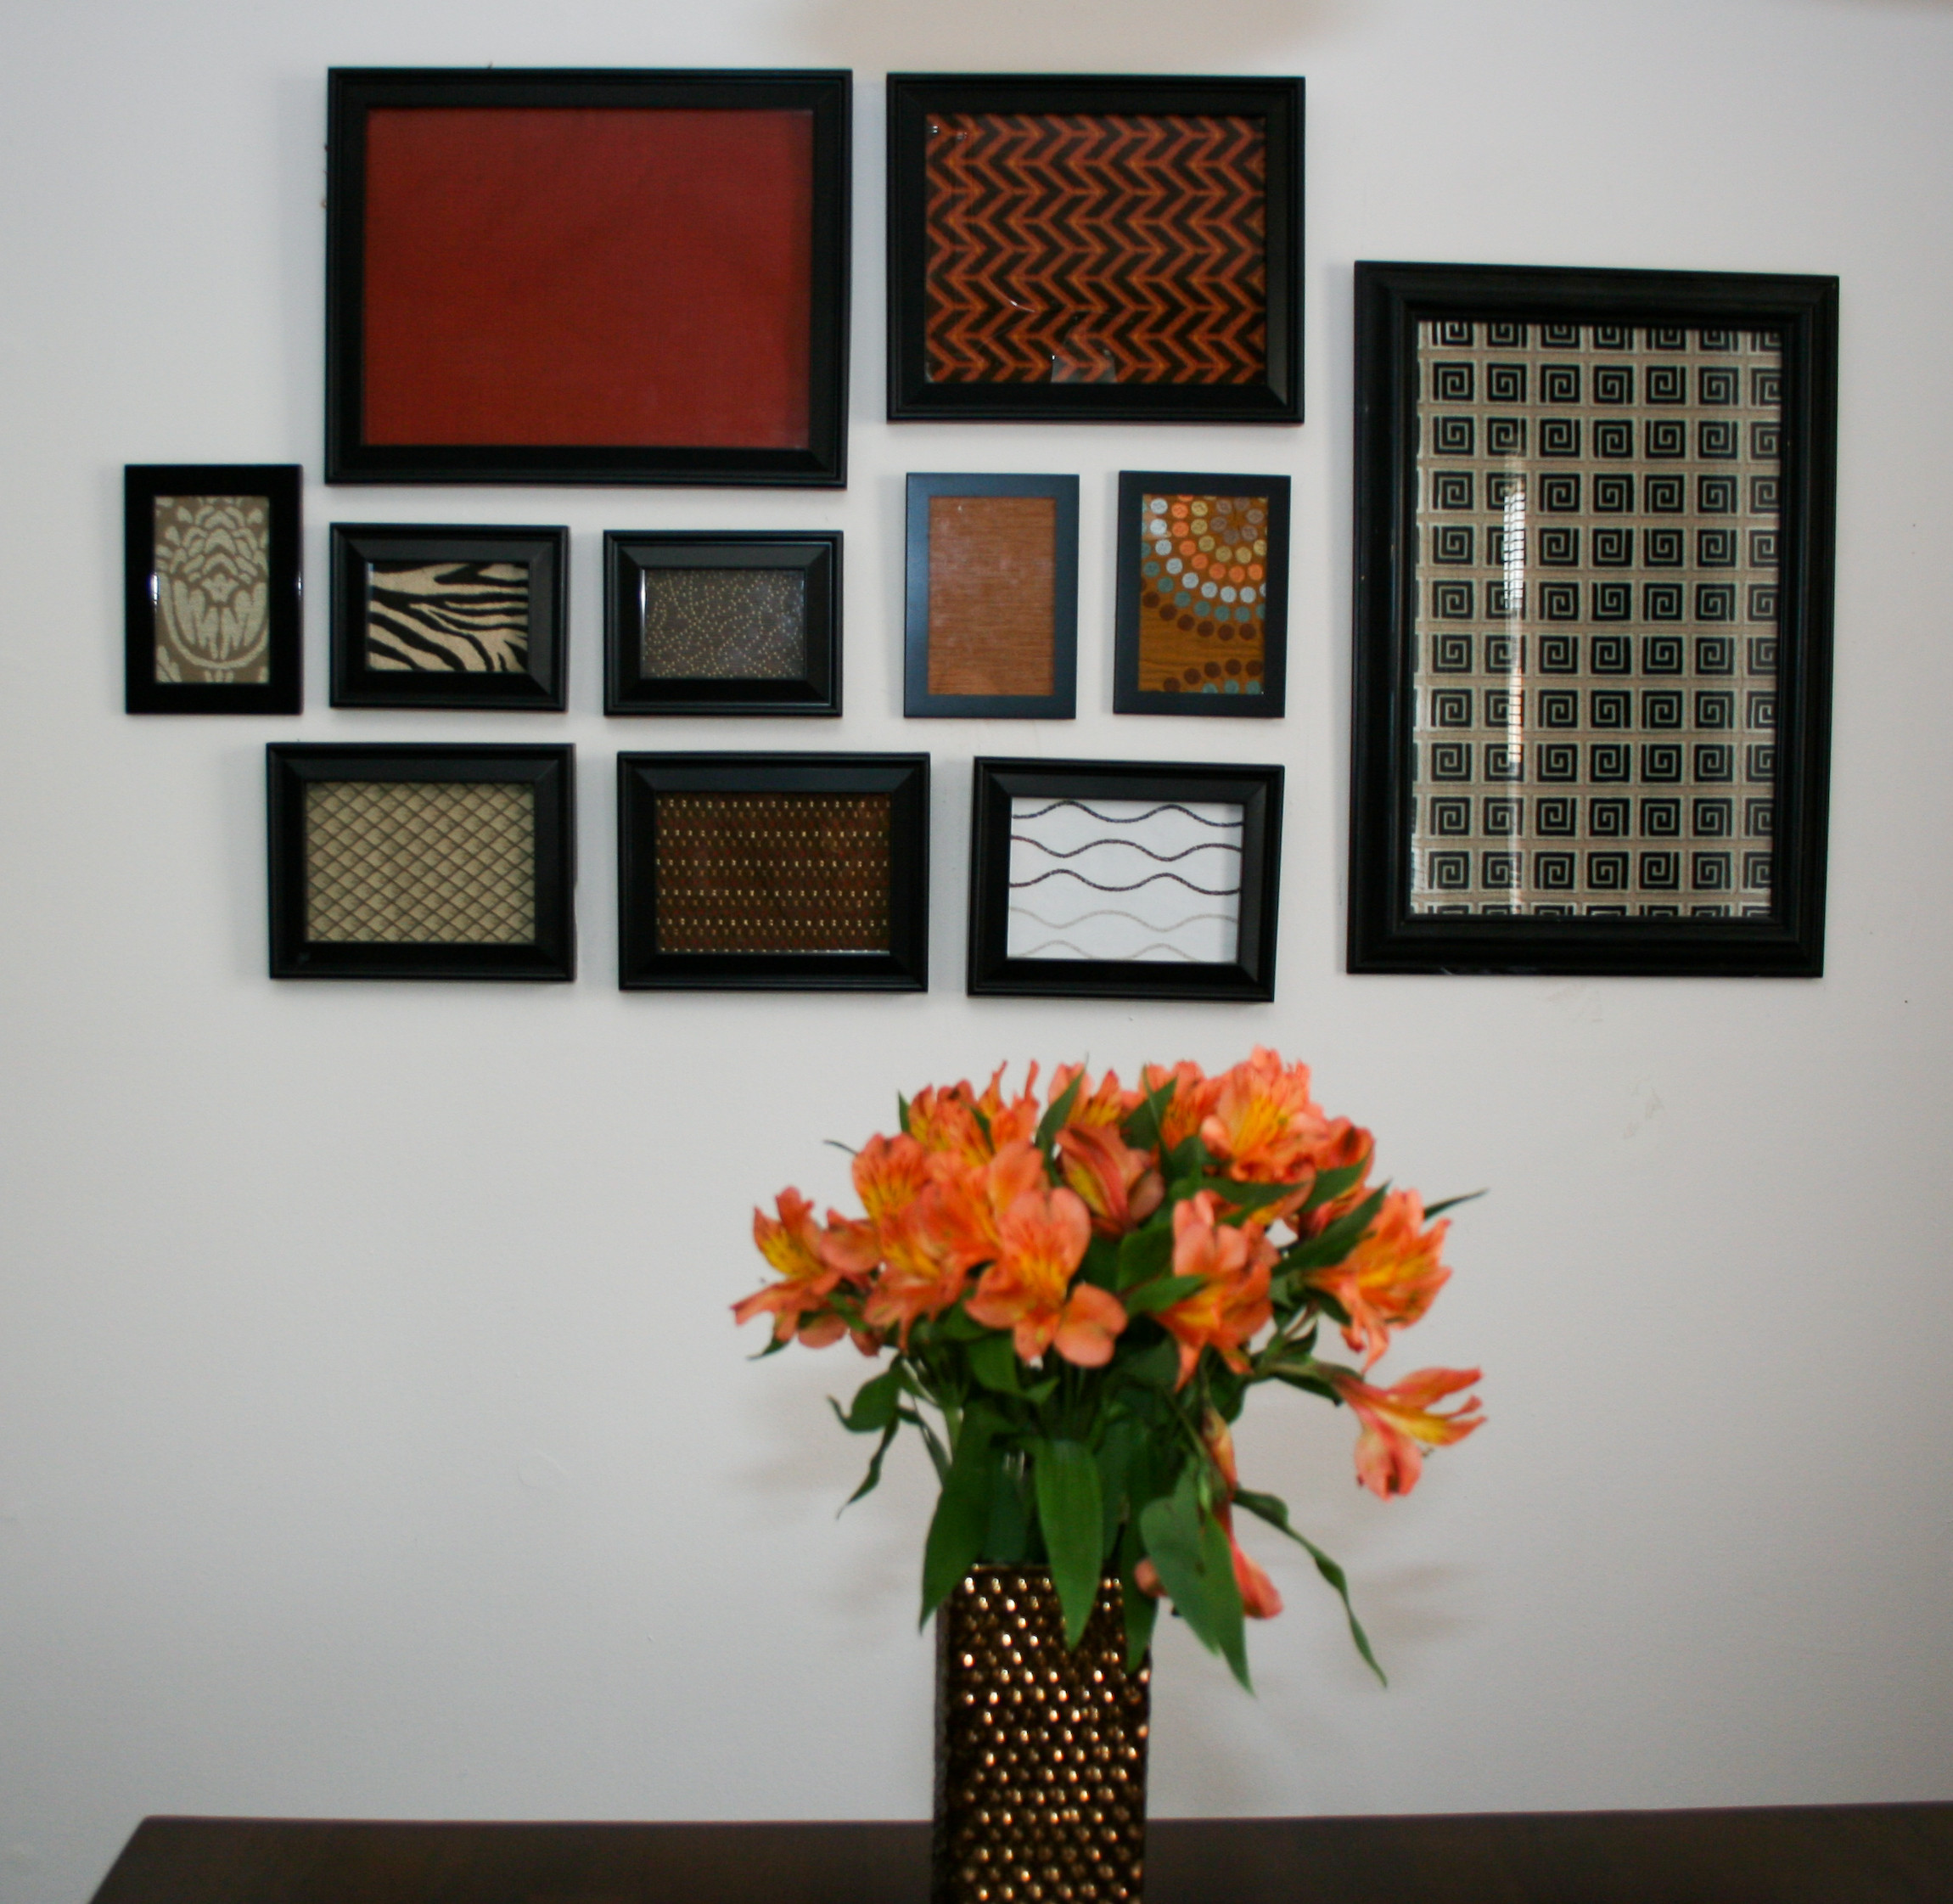 Best ideas about Fabric Wall Art . Save or Pin Framed Fabric Wall Art Now.